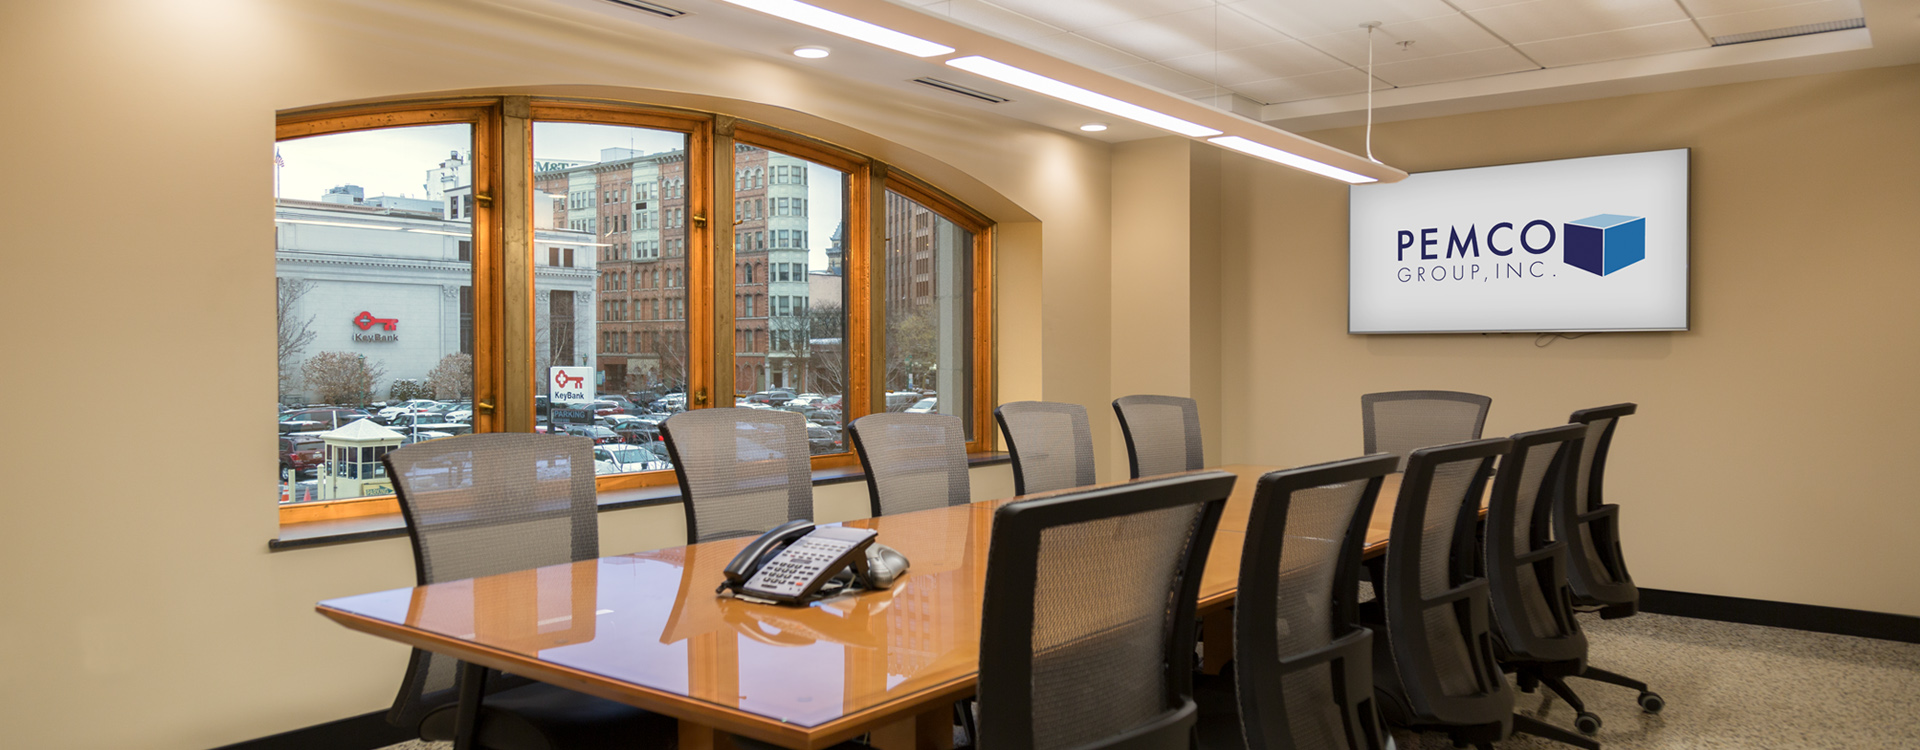 Pemco Group Conference Room